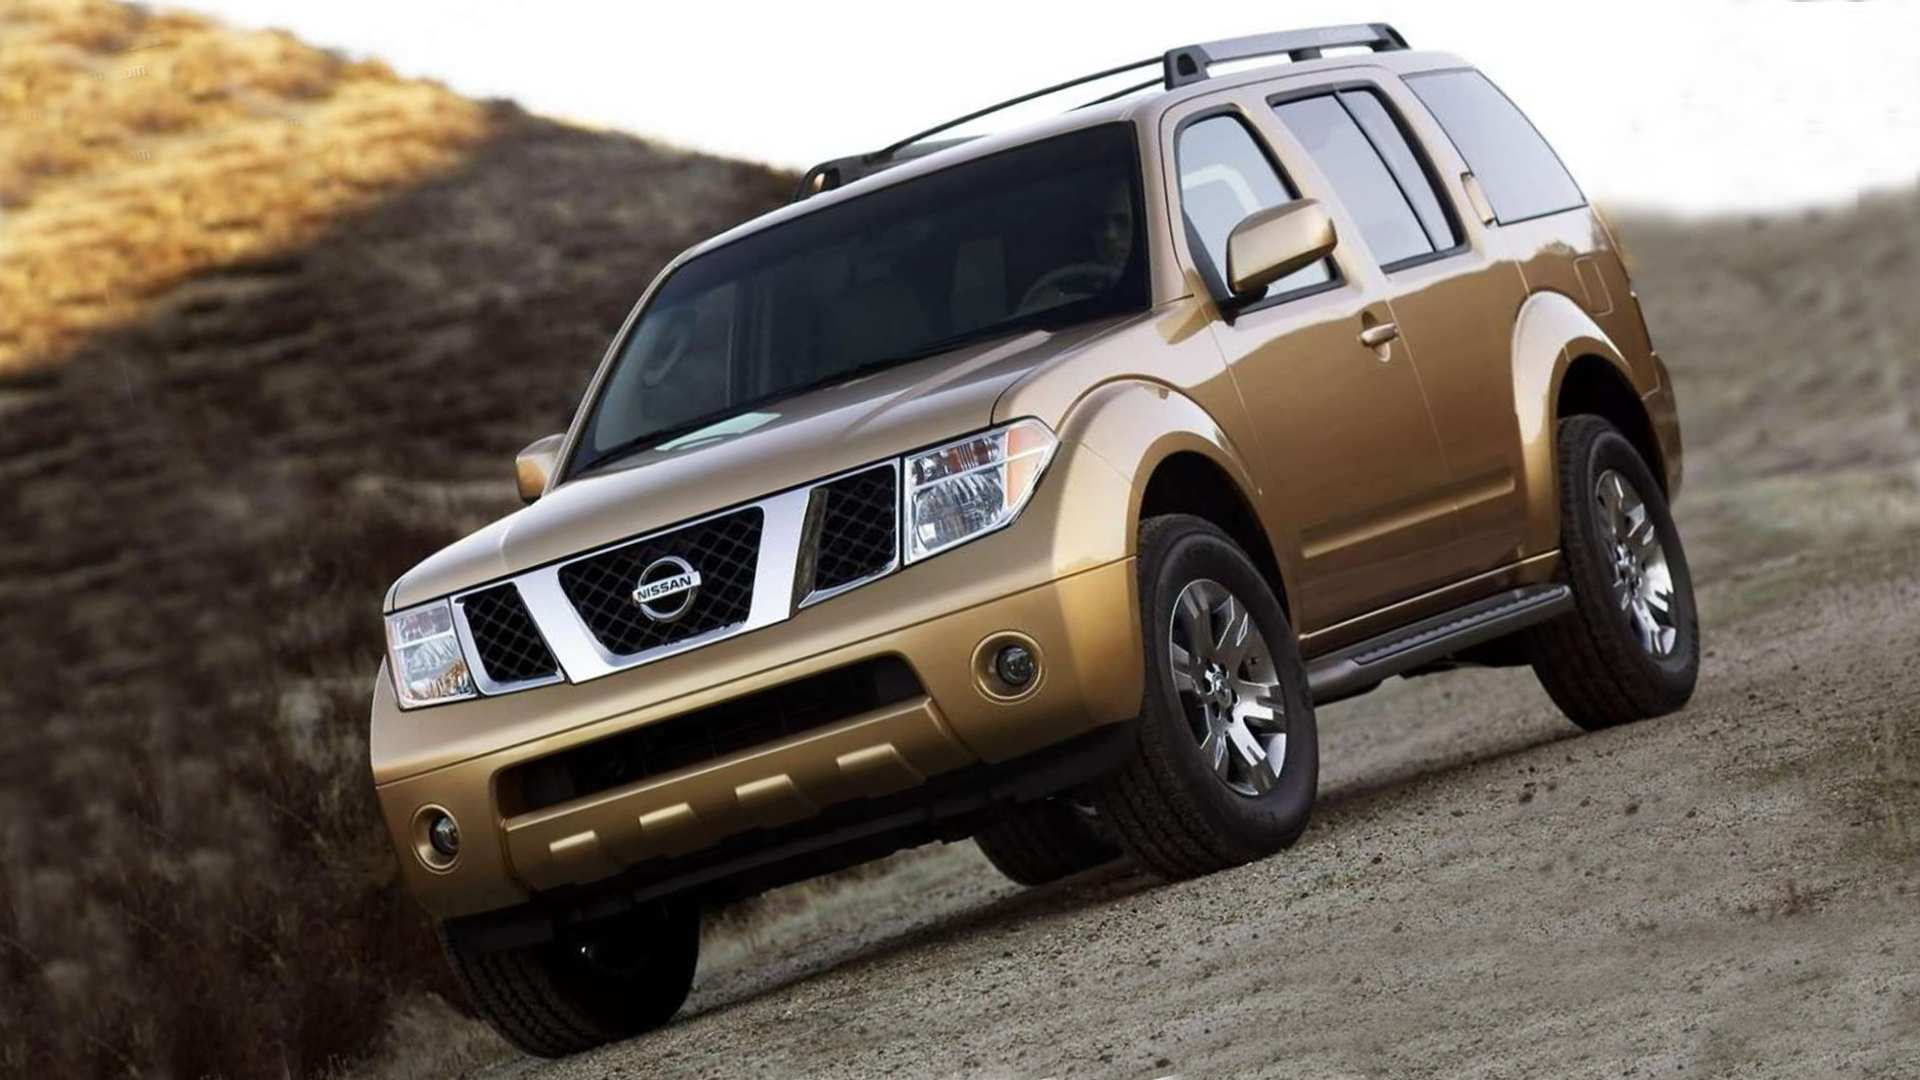 61 All New 2019 Nissan Pathfinder Release Date Exterior And Interior